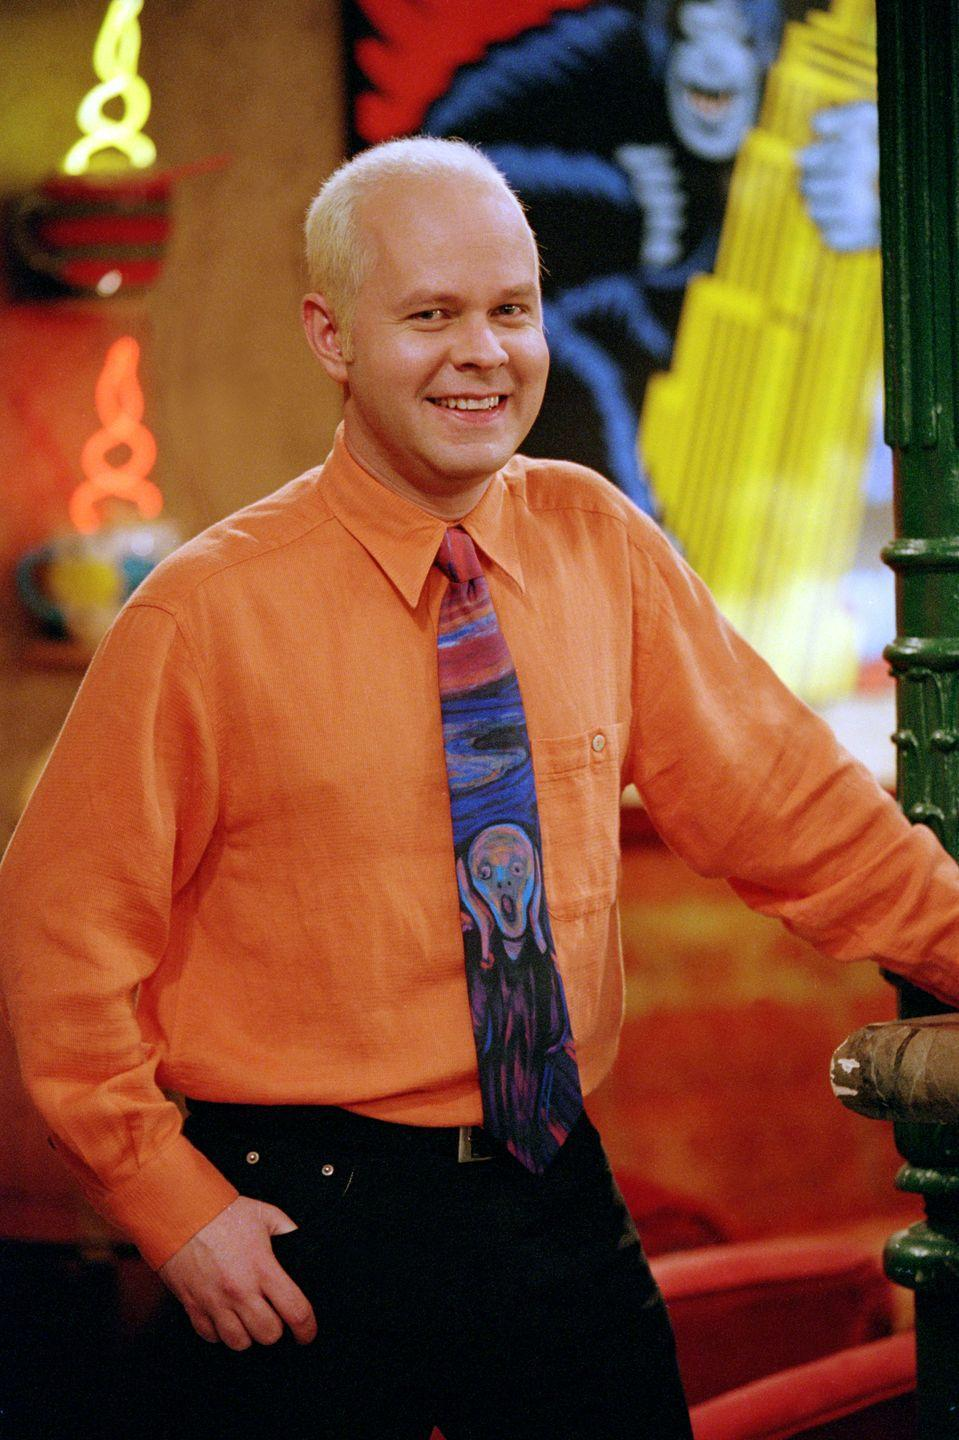 <p><strong>In Friends: </strong></p><p>Gunther is the Central Perk manager/barista who is desperately in love with Rachel and therefore, by default, hates Ross.</p>